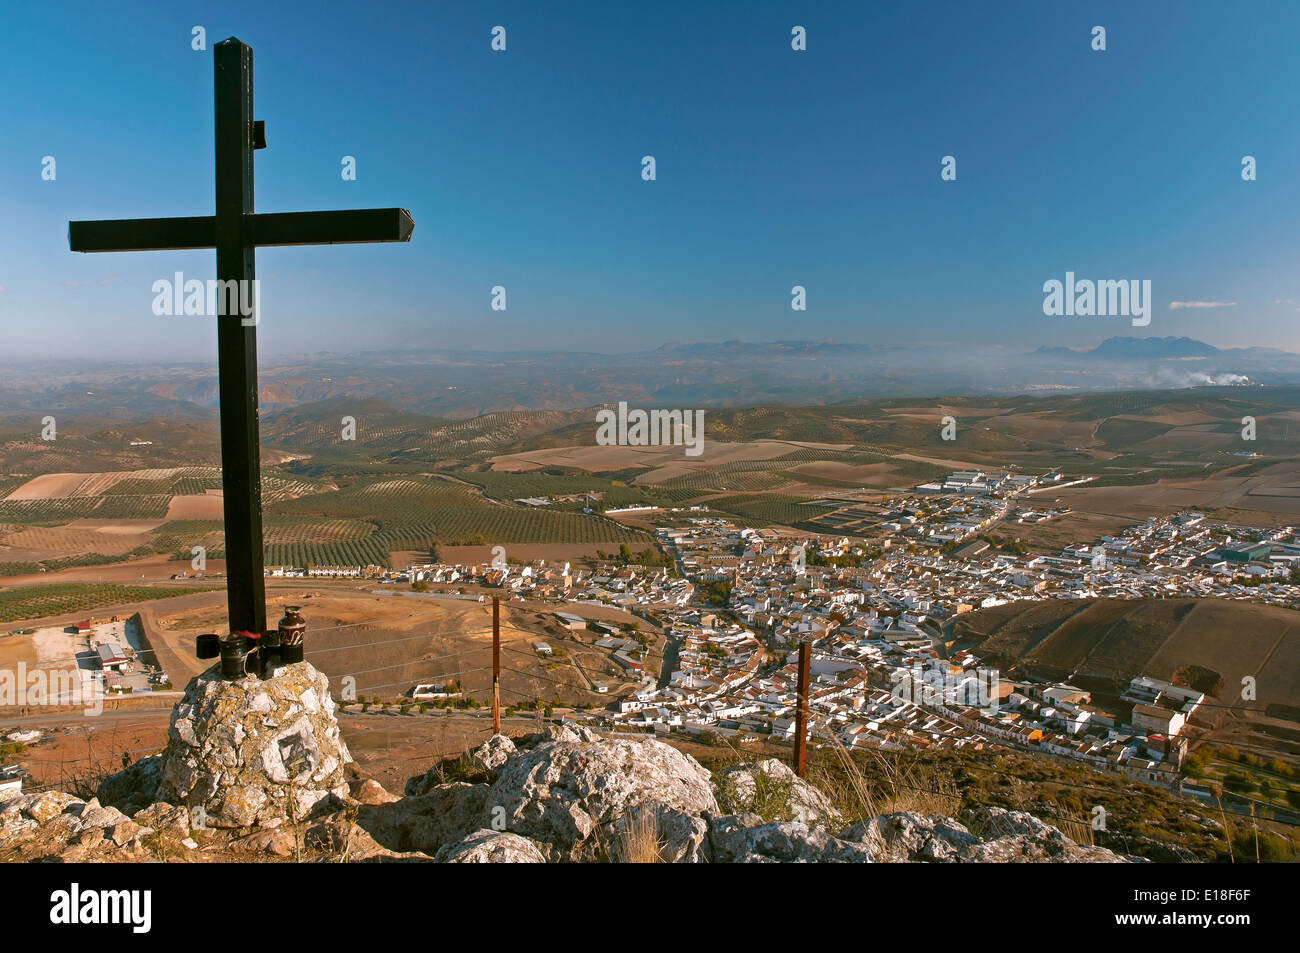 Panoramic view and cross, Alameda, Malaga-province, Region of Andalusia, Spain, Europe - Stock Image